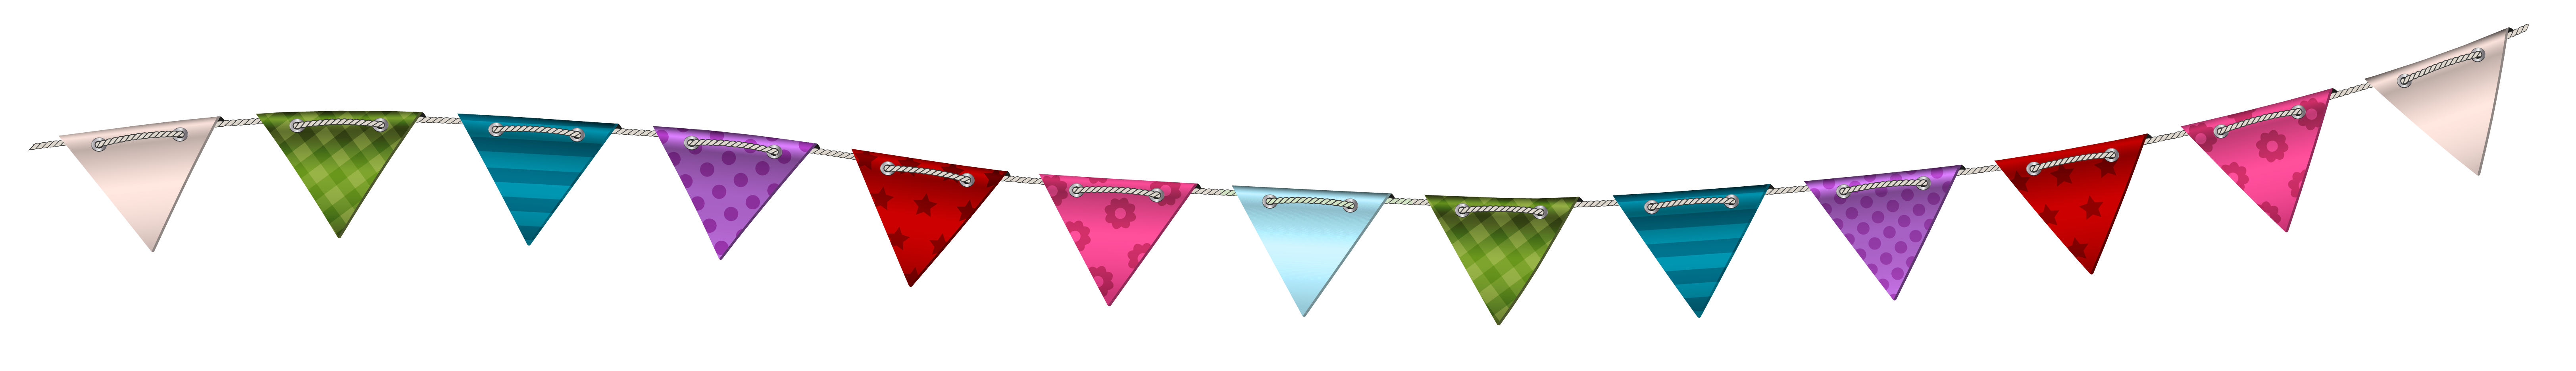 Horn clipart celebration. Transparent party streamer png